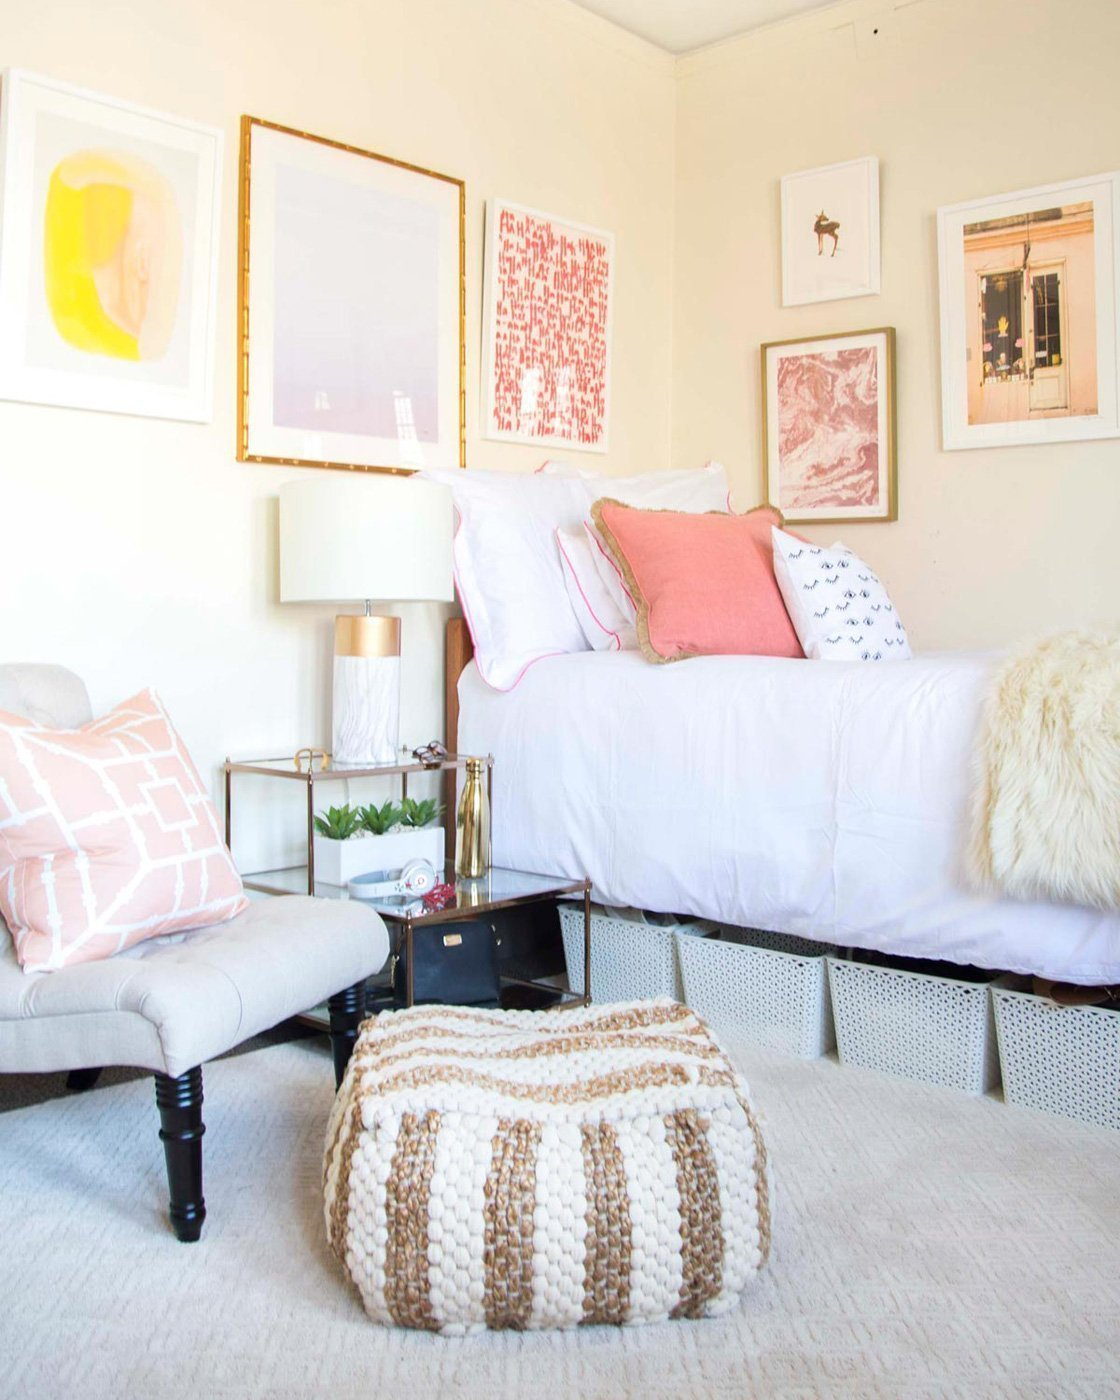 Bedroom Wall Art With Designer Thou Swell In Blush And Blue